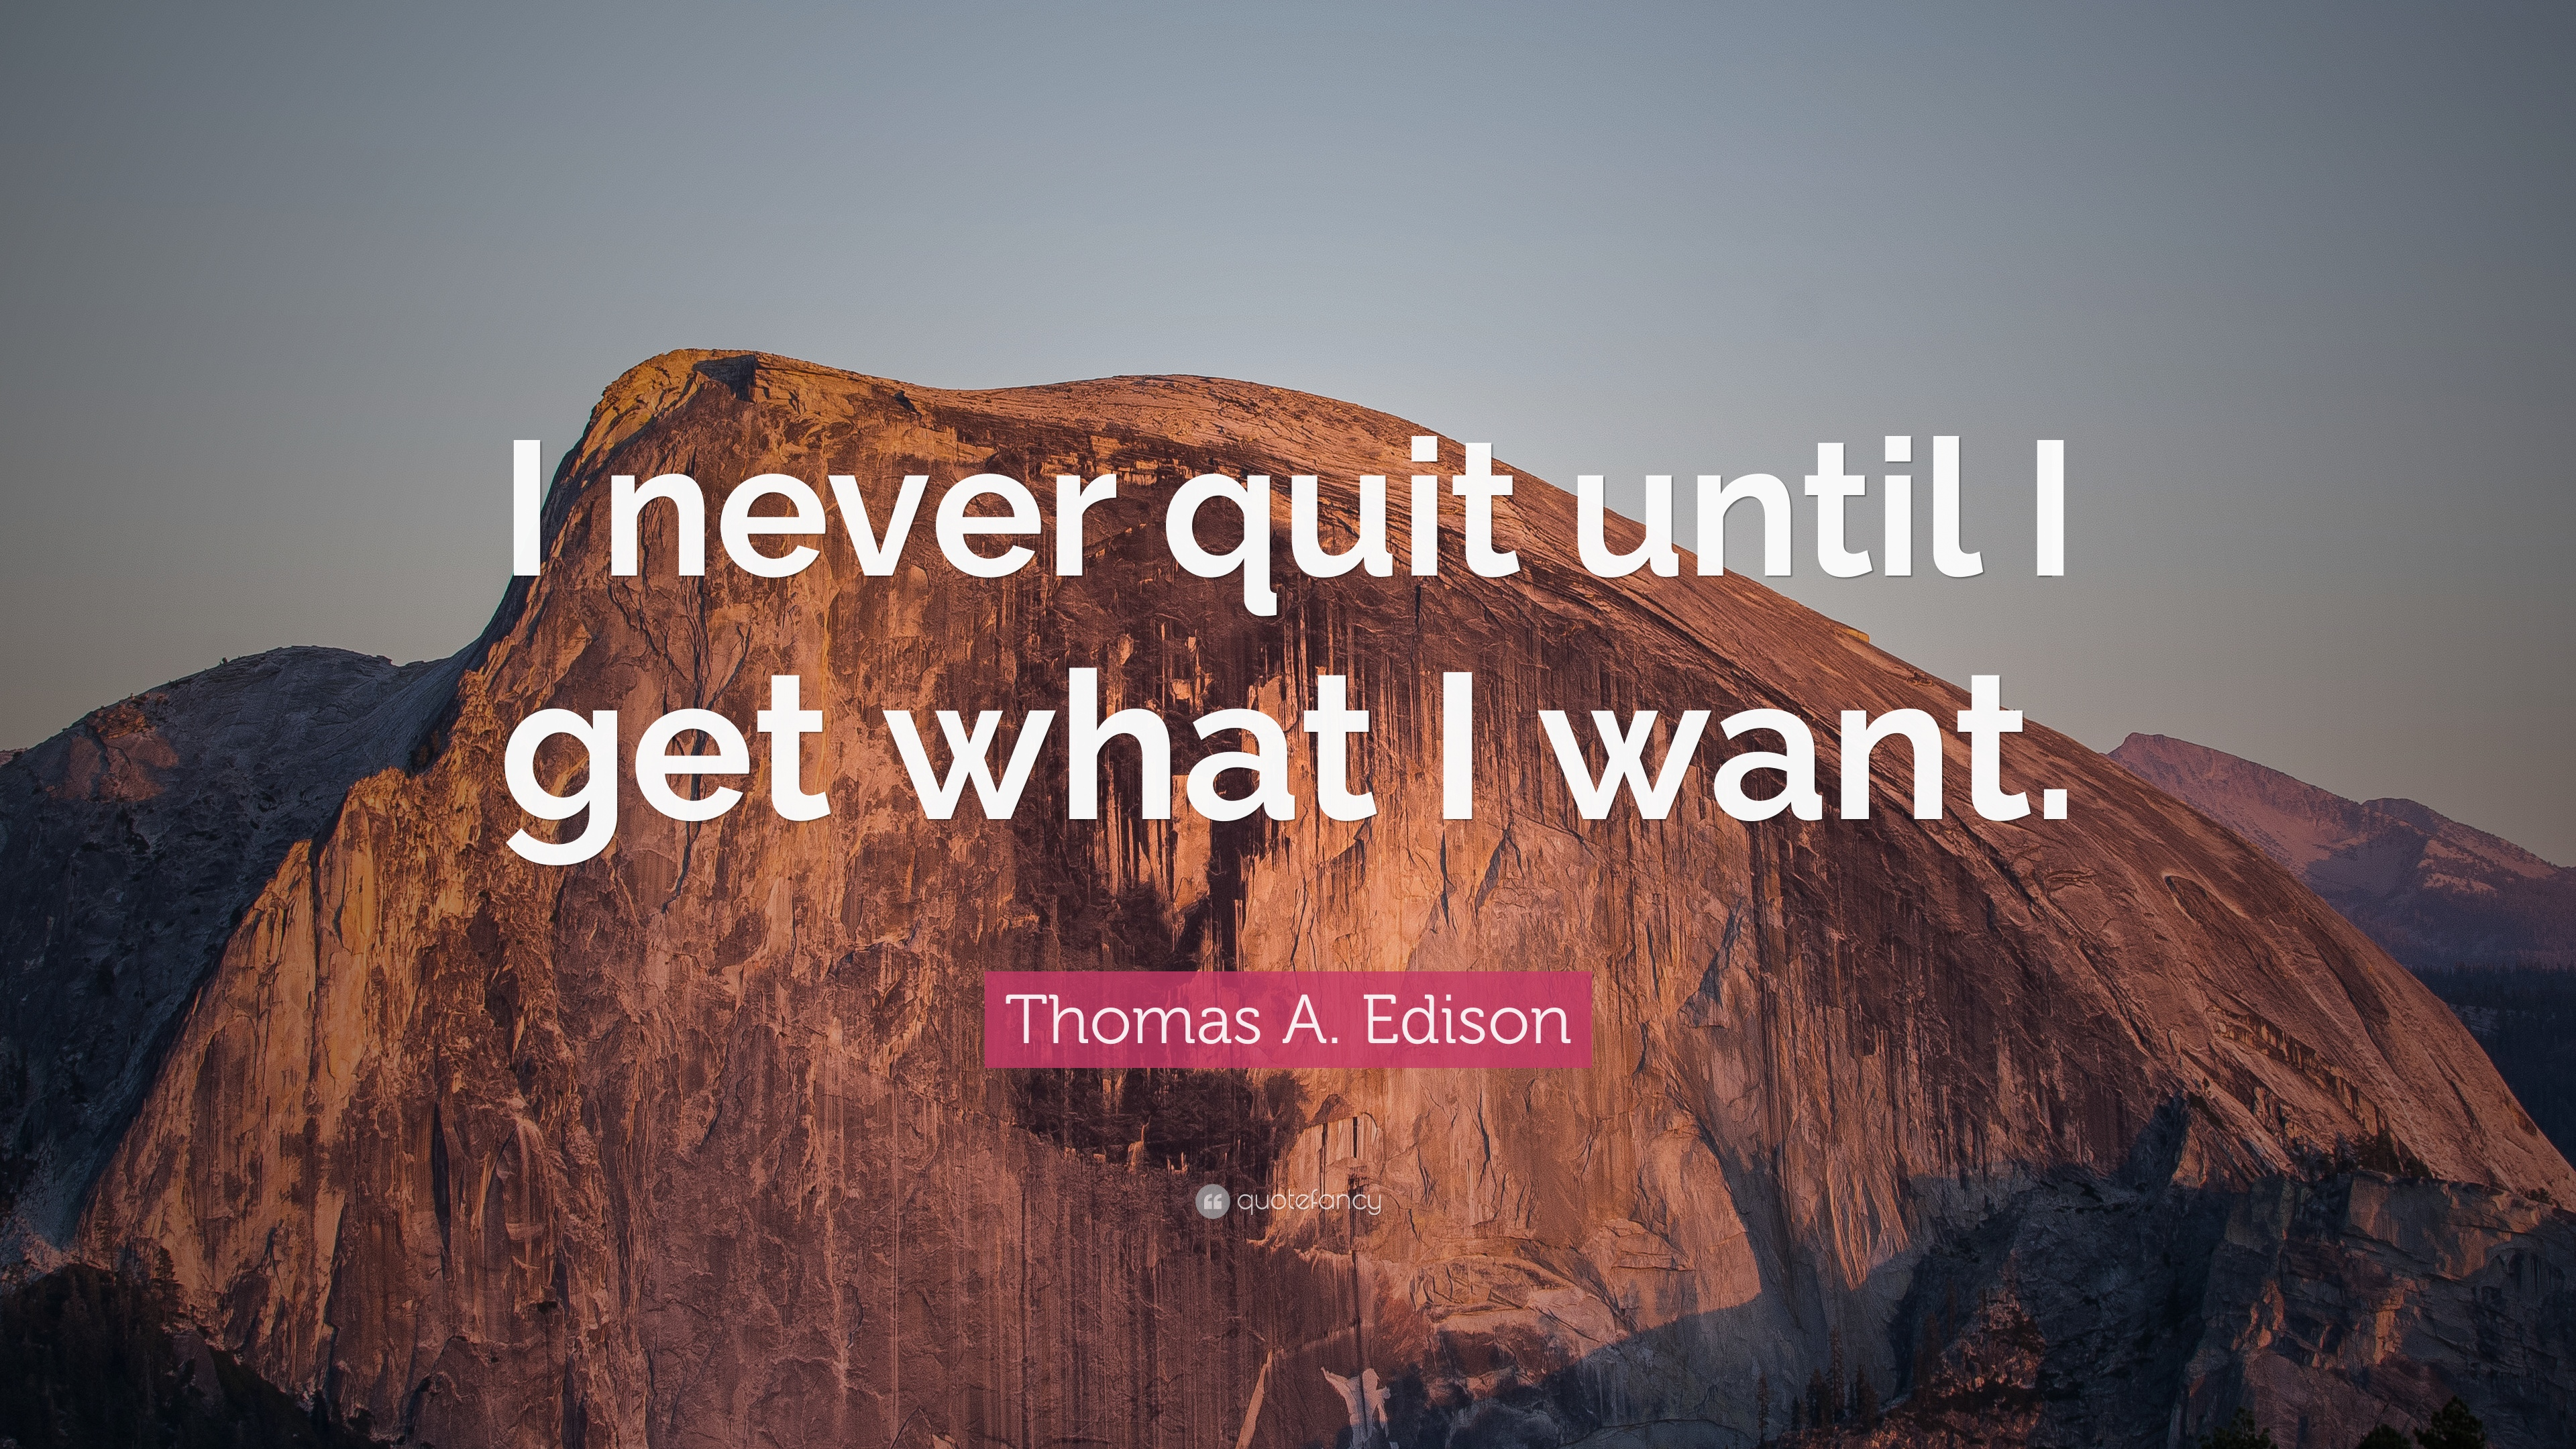 Thomas a edison quotes 100 wallpapers quotefancy - Quit wallpaper ...